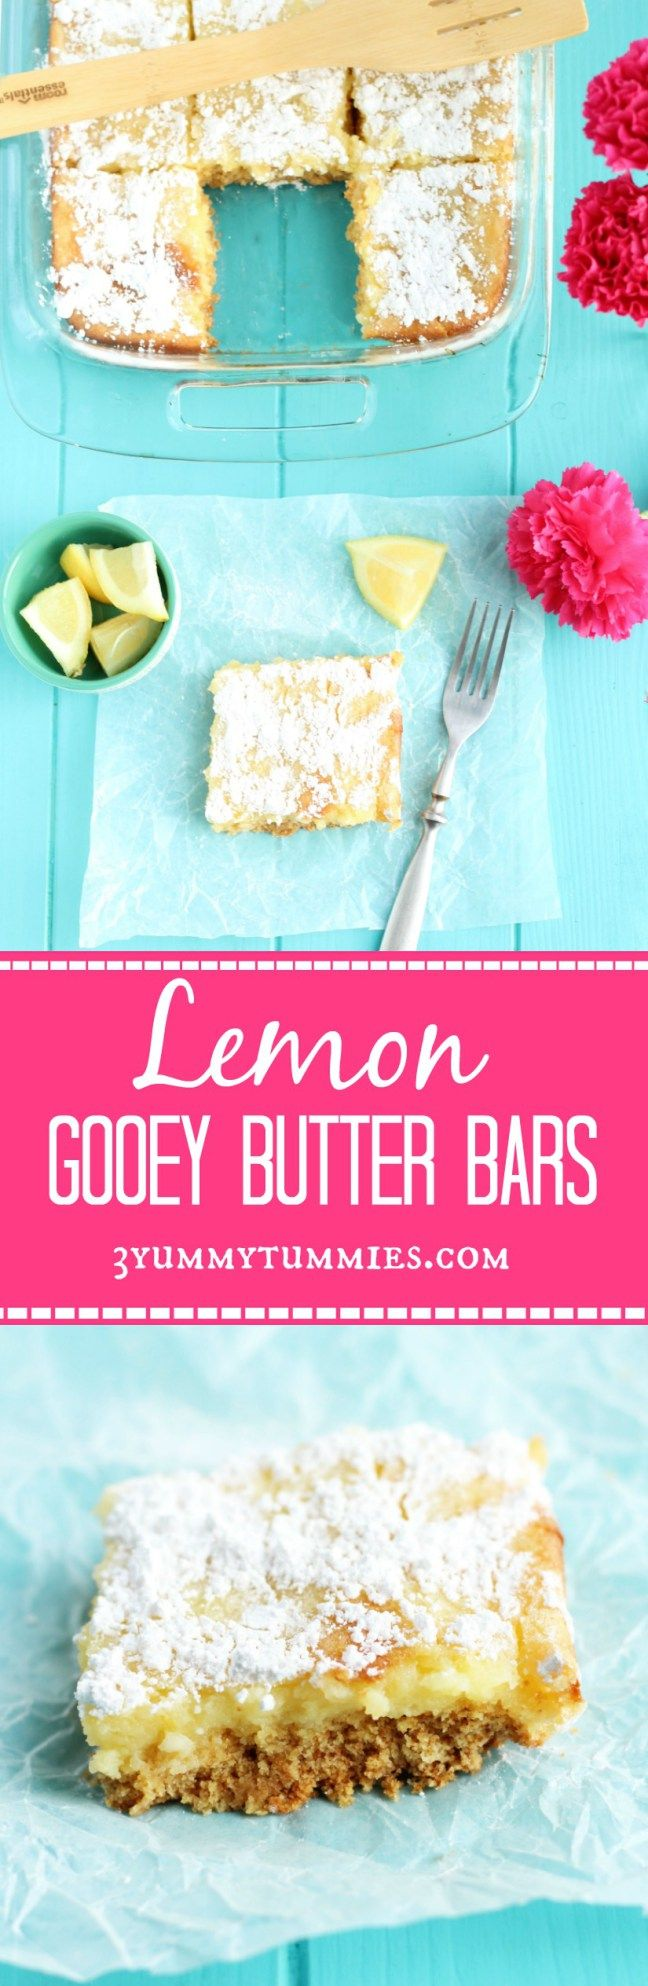 These Lemon Gooey Butter Bars are the ultimate ooey gooey goodness with an easy cake mix crust!